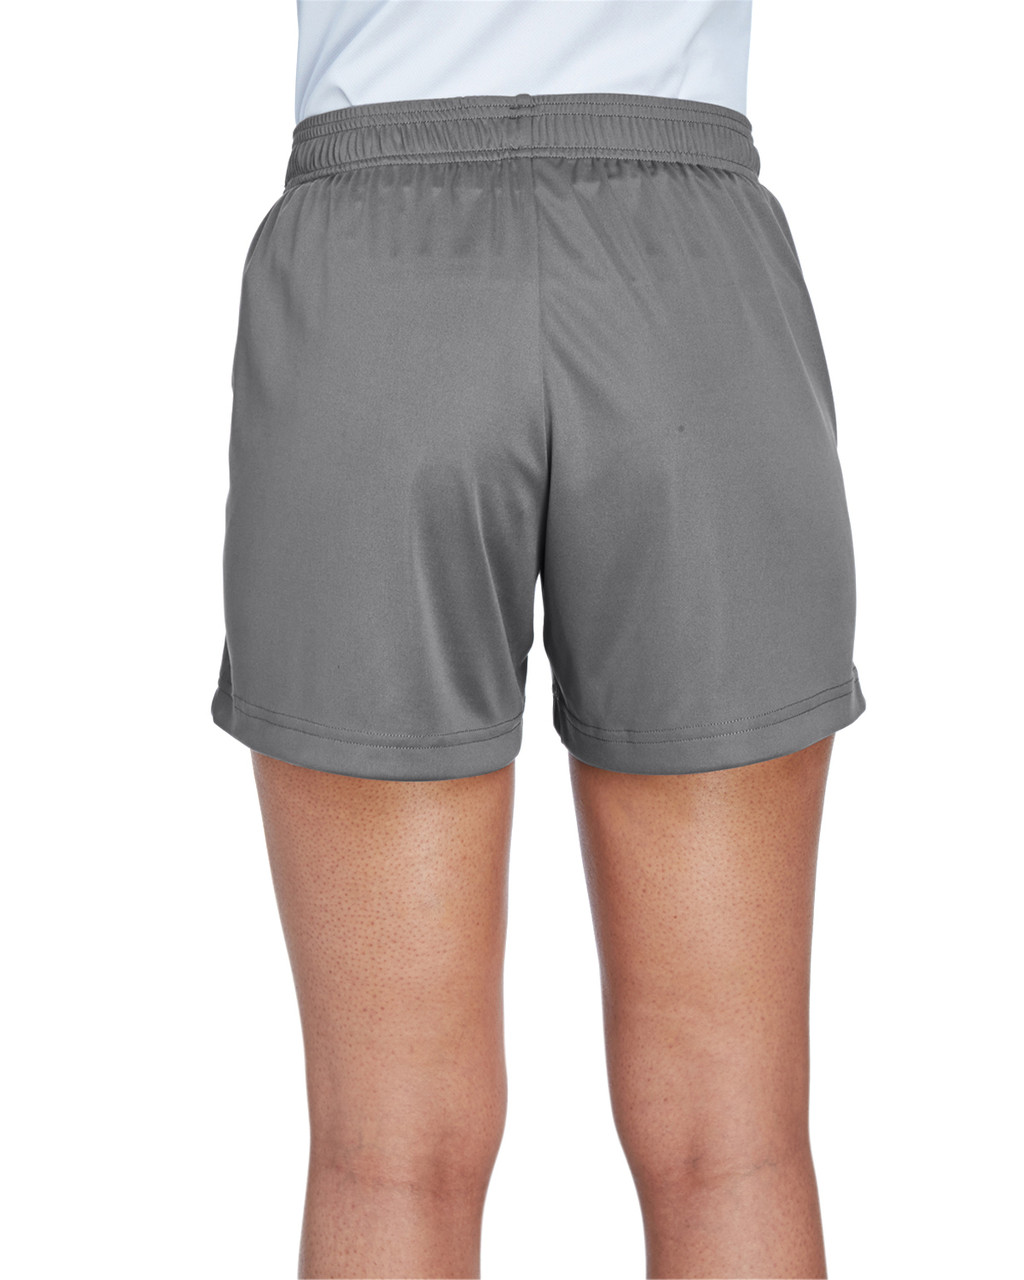 Sport Graphite - Back, TT11SHW Team 365 Ladies' Zone Performance Short | T-shirt.ca